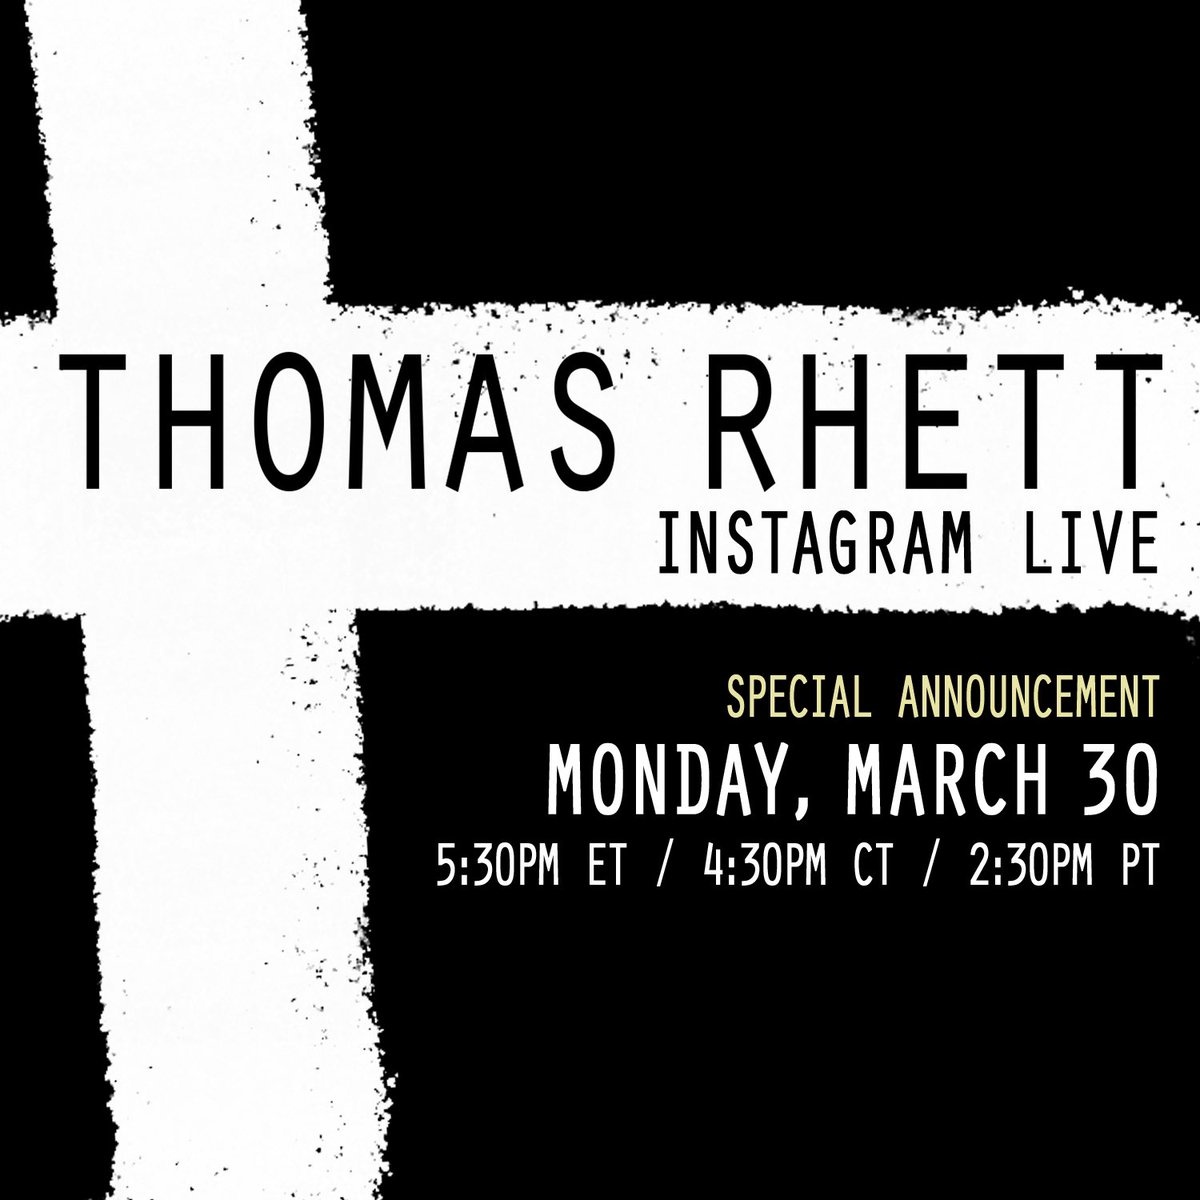 This time tomorrow. Instagram Live. Got something new to share with y'all 💡